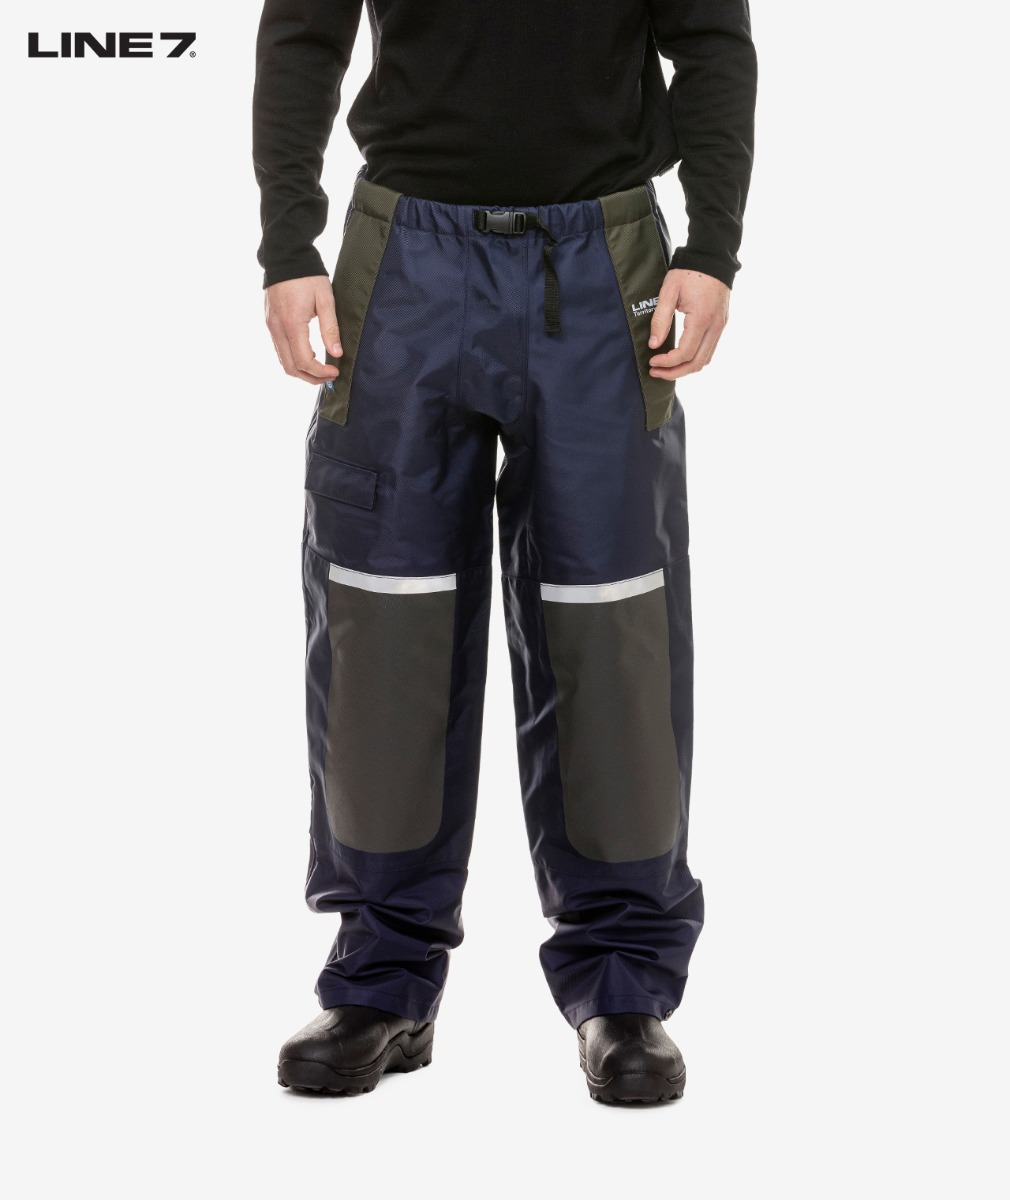 Line 7 Men's Territory Waterproof Over Trouser